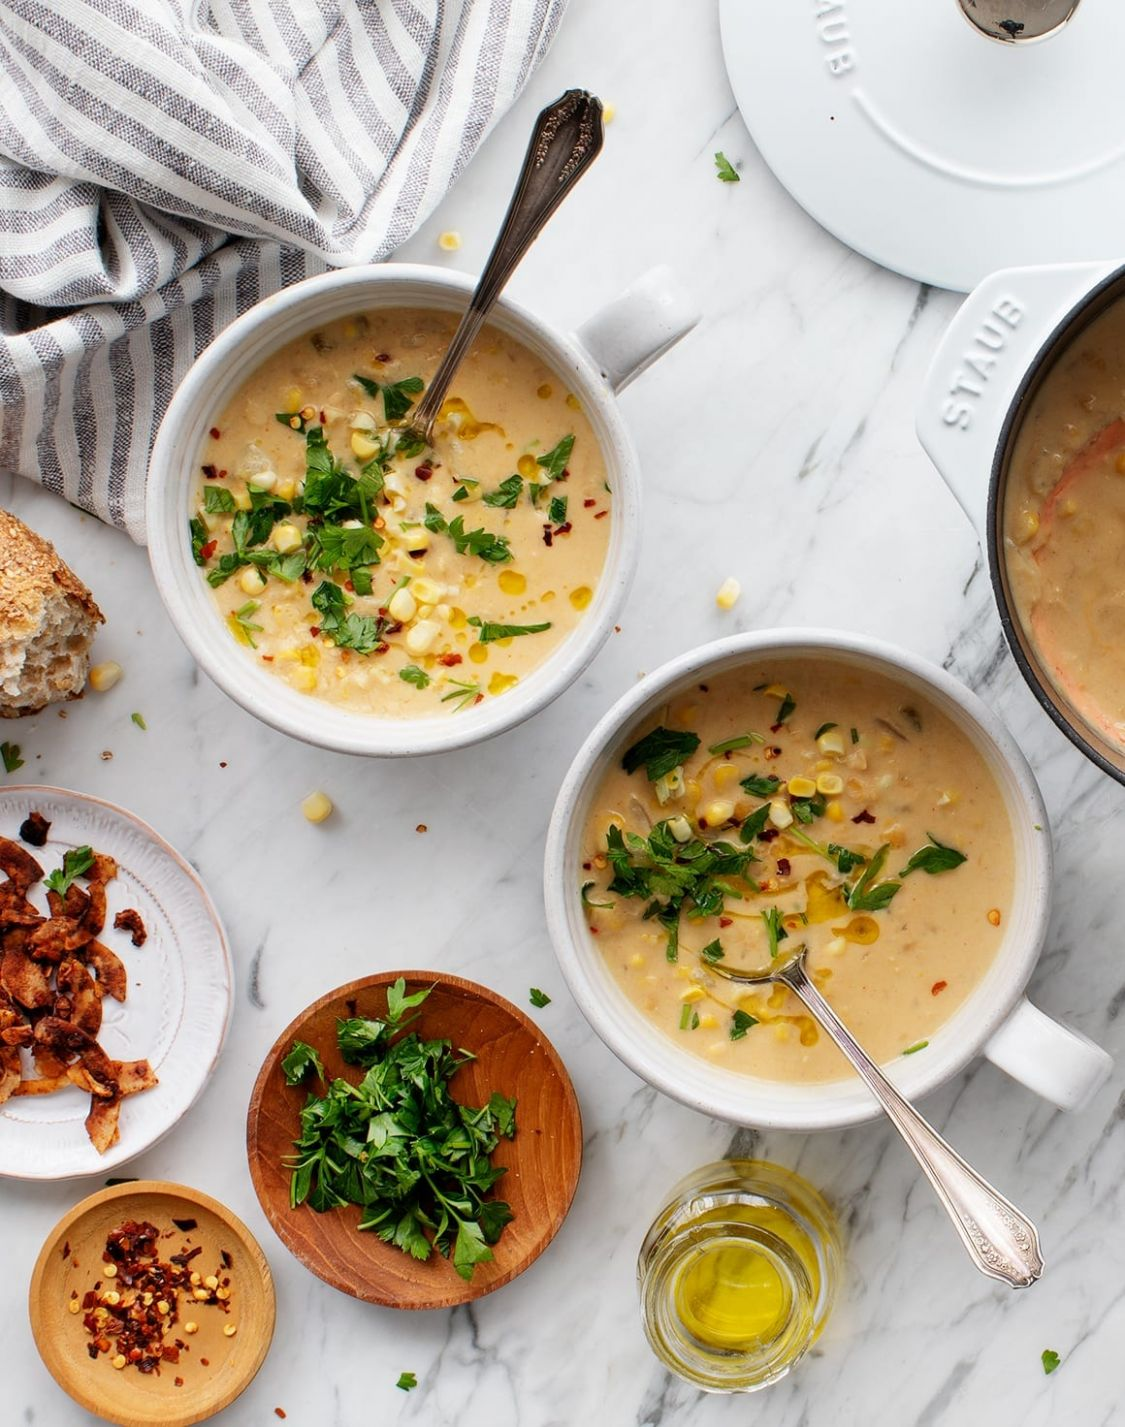 11 Best Soup Recipes - Love and Lemons - Recipes For Soup